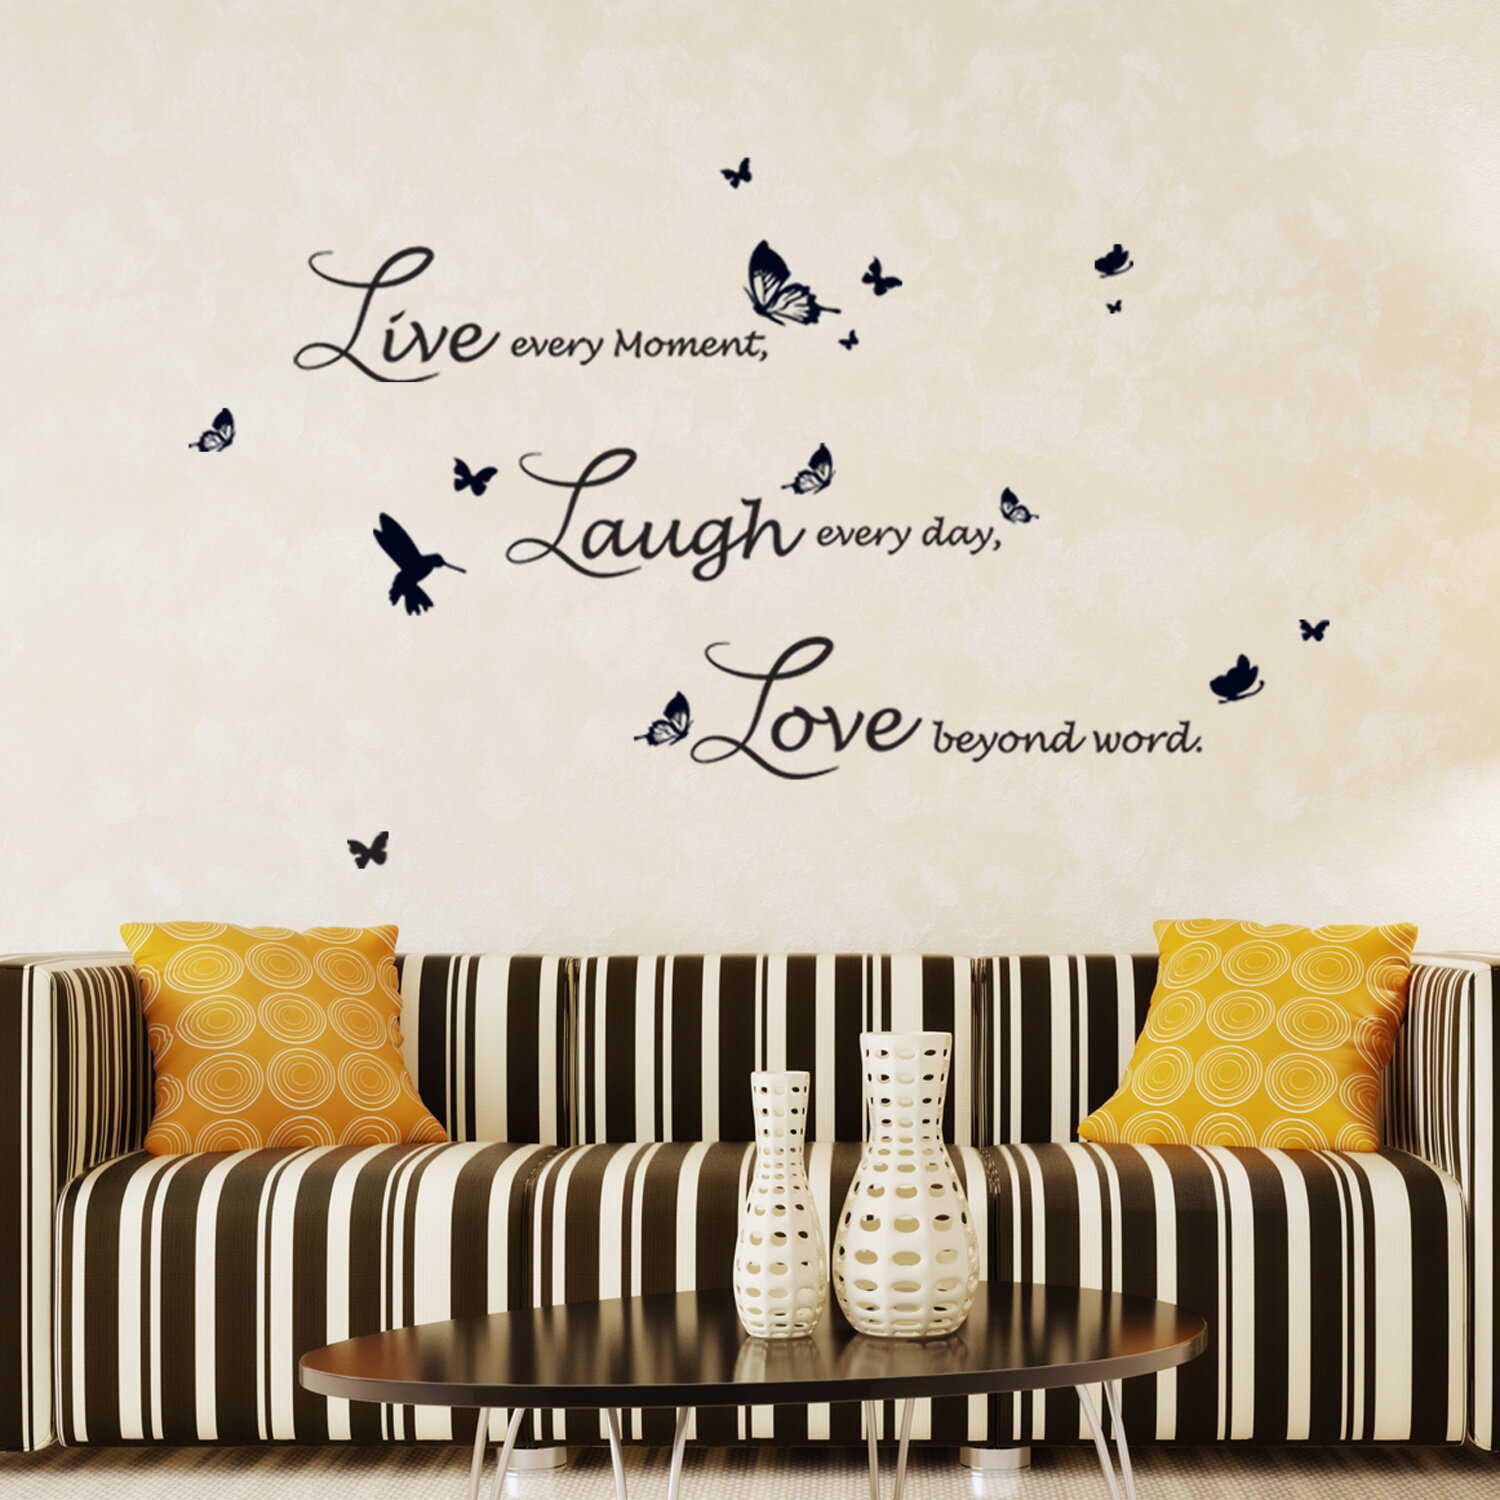 Ebern Designs Lucida Live Laugh Love Wall Decal Reviews Wayfair